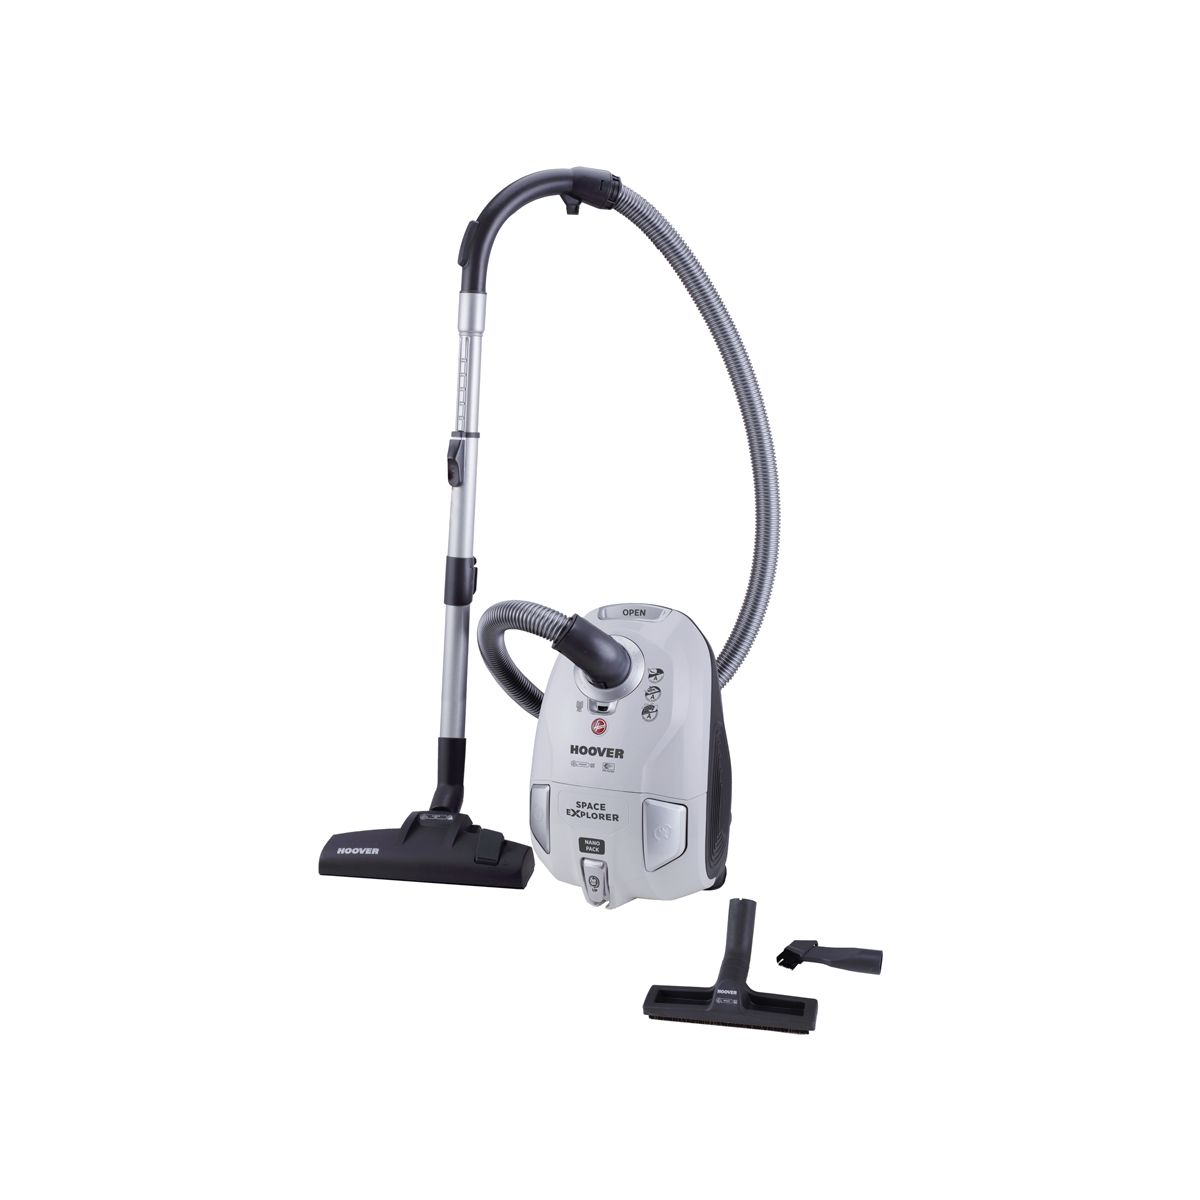 Aspirateur avec sac HOOVER SL71_SL10 SpaceExplorer (photo)